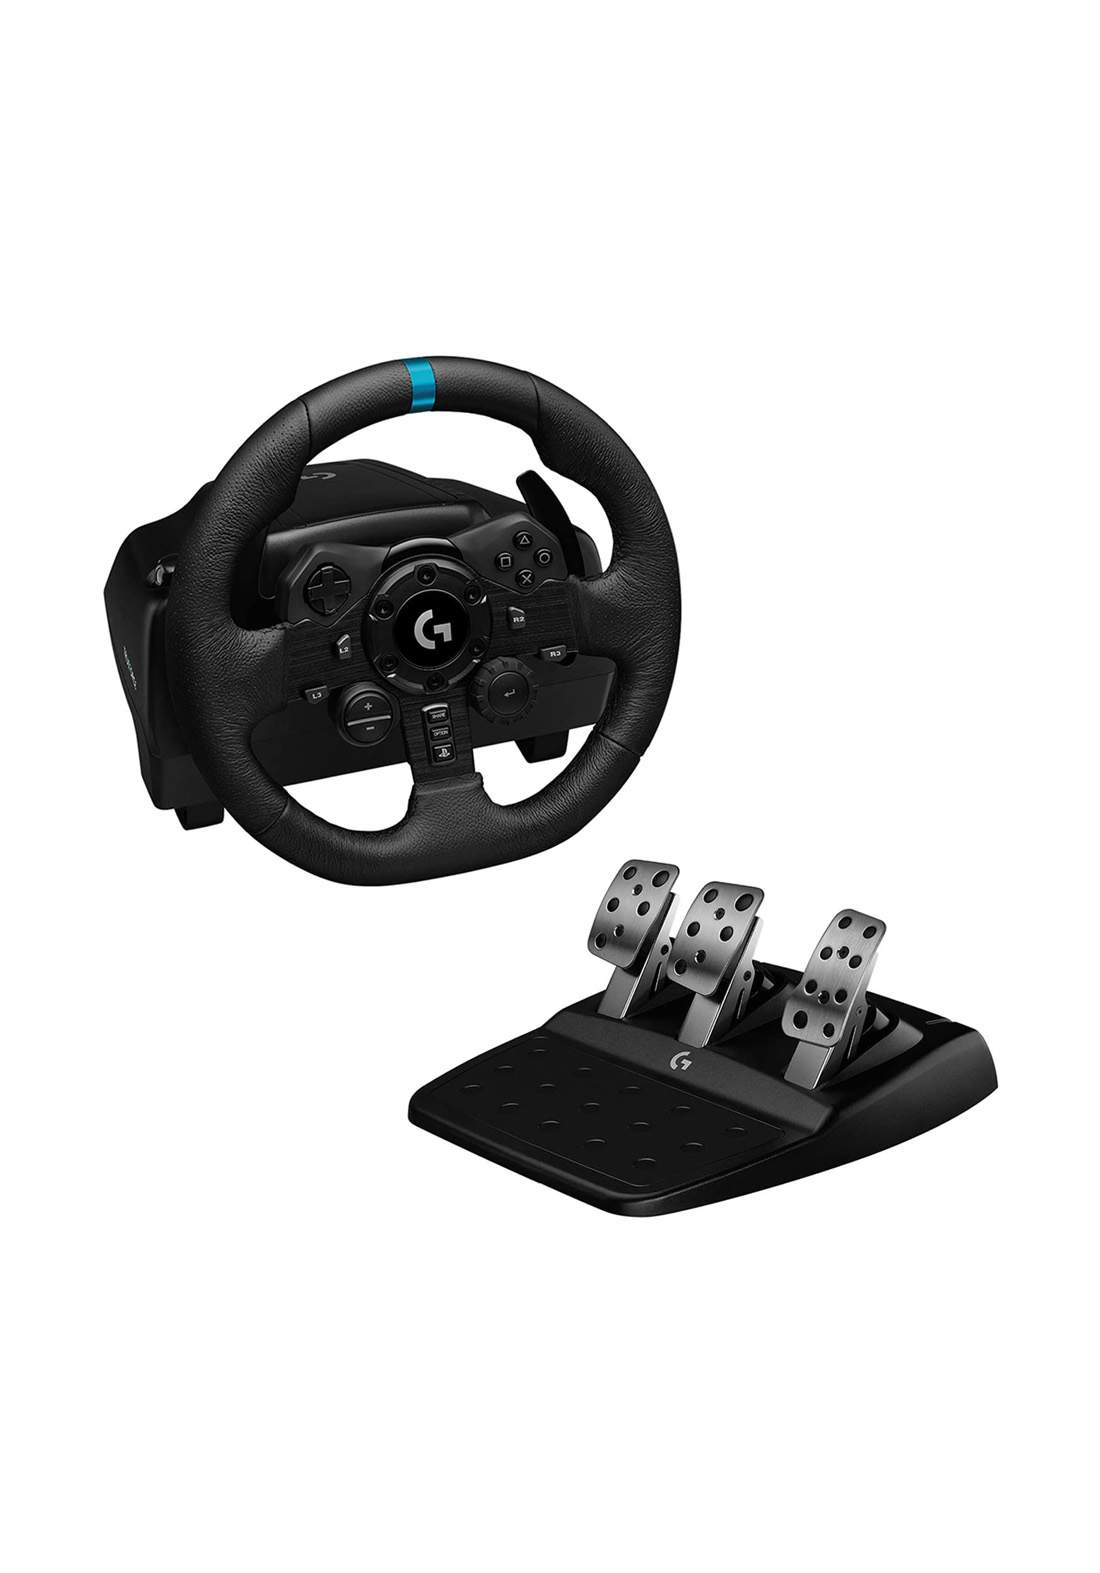 Logitech G923 Racing Wheel and Pedals for PS 5- PS4 and PC - Black